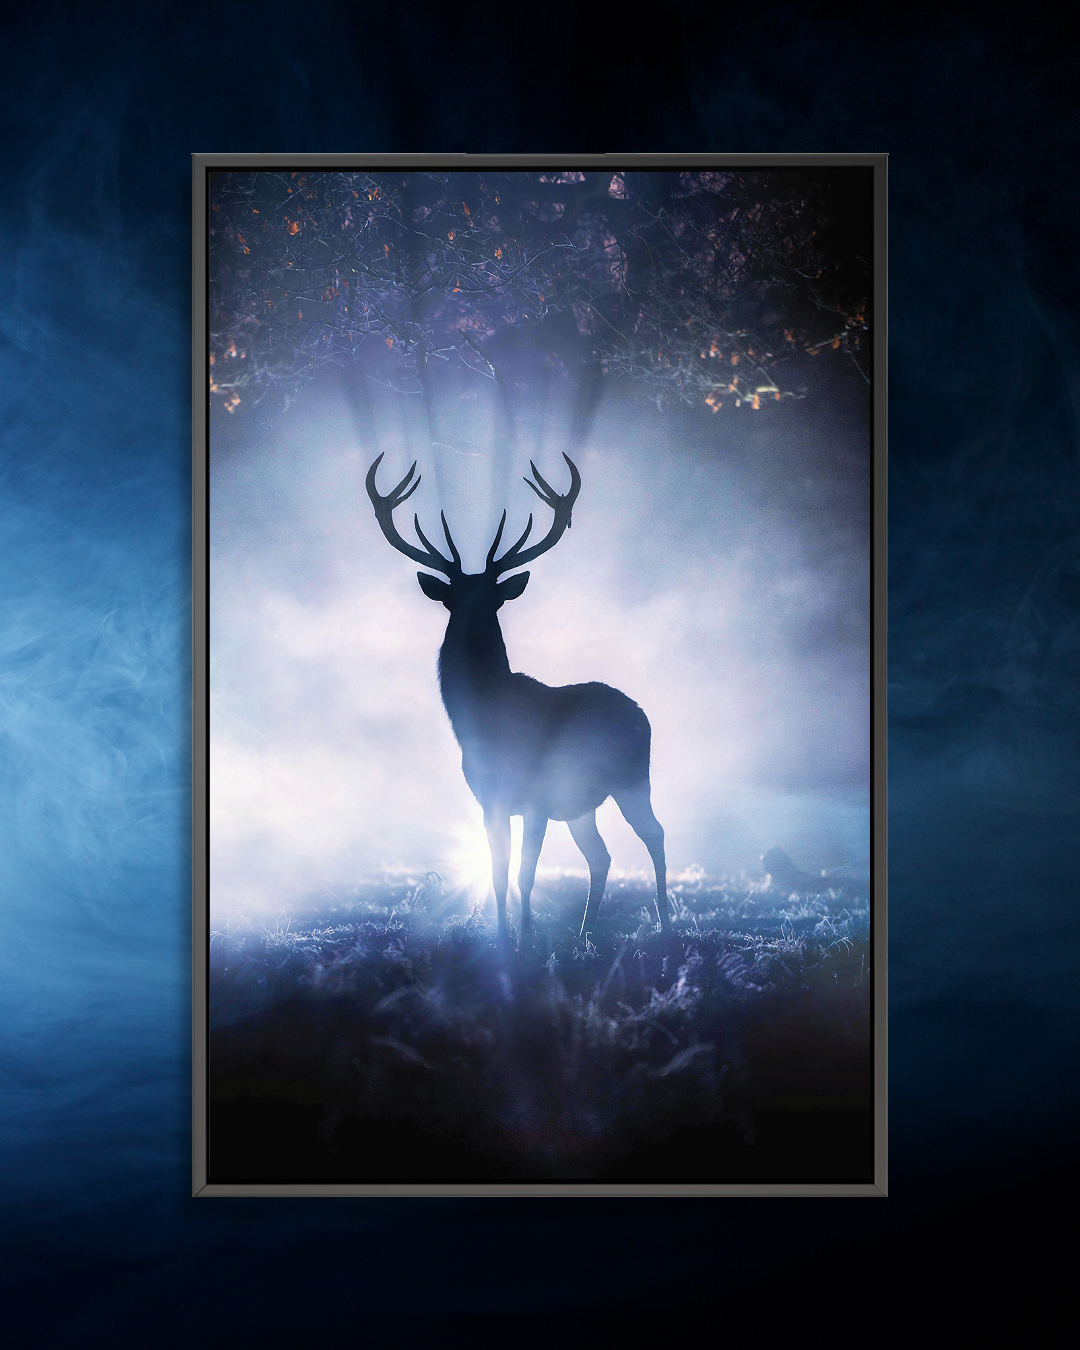 """""""Cernunnos Rising"""" by Max Ellis shows the silhouette of a stag glowing from a light in the nighttime."""